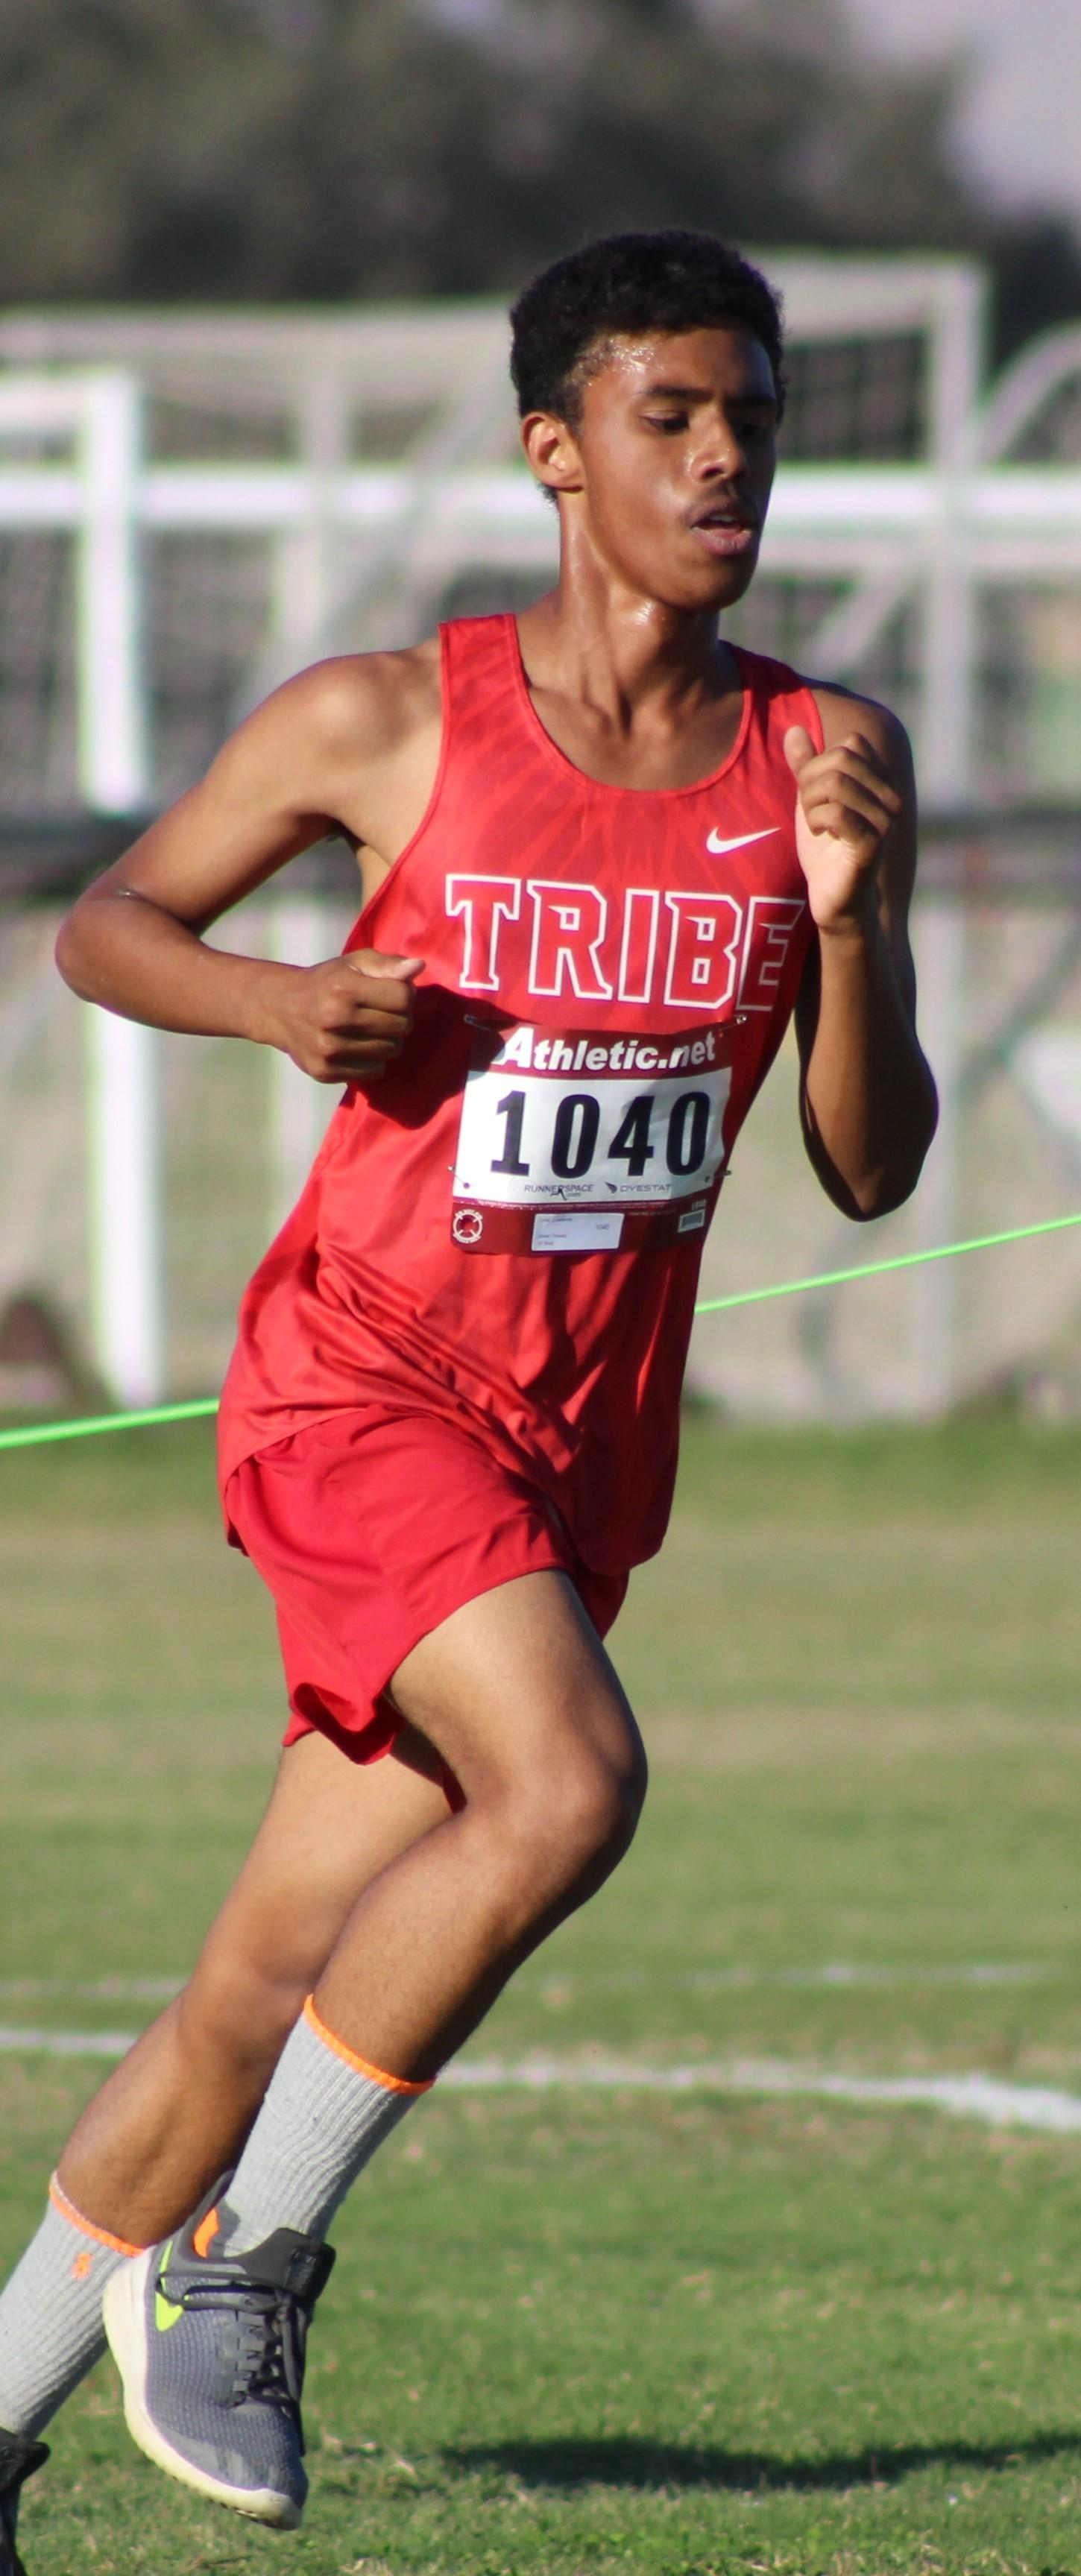 Cross country runners competing at Reedley College.